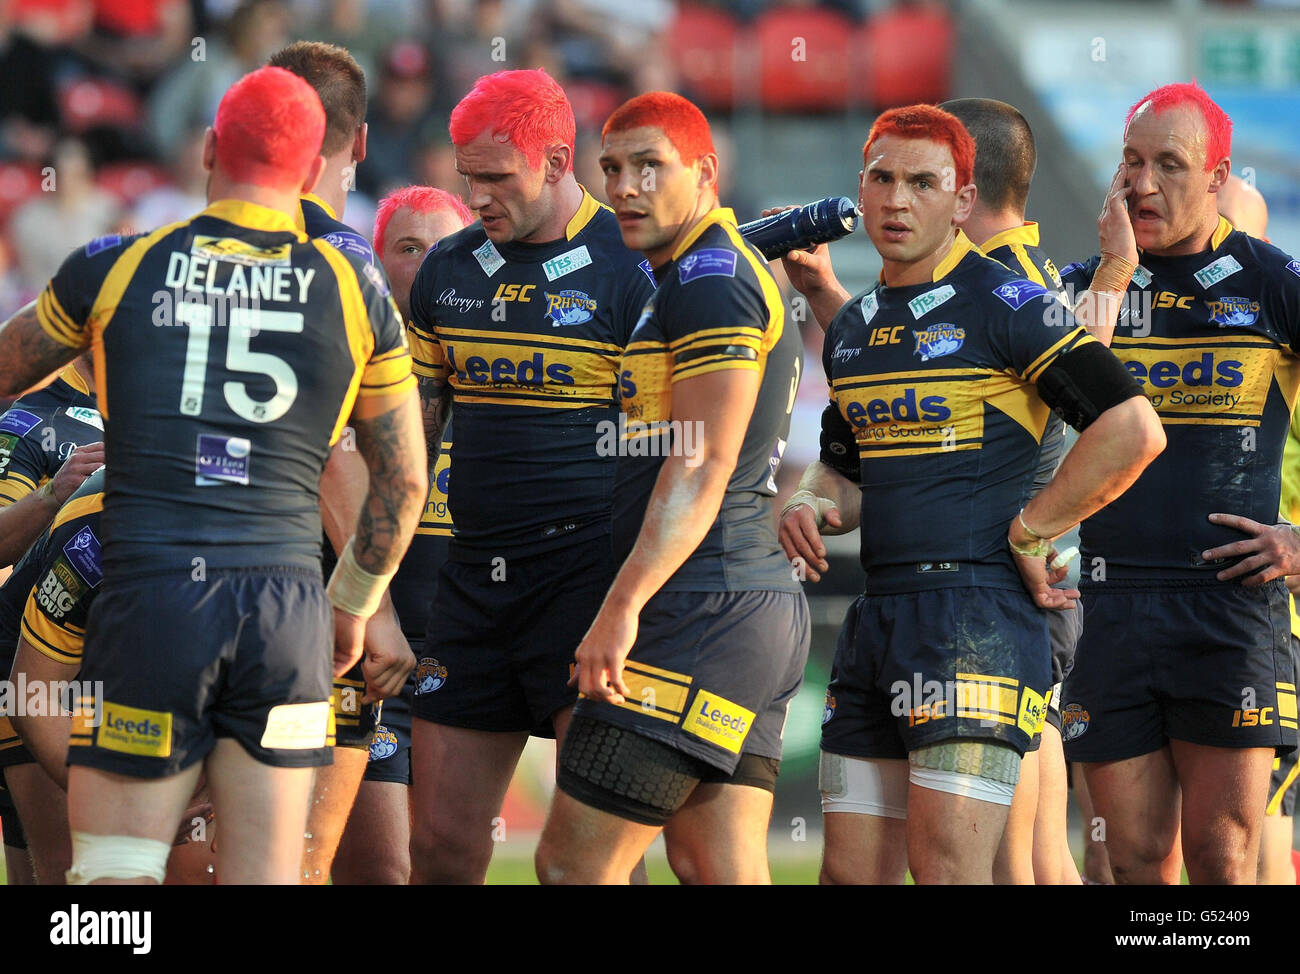 Funny Rugby Players High Resolution Stock Photography And Images Alamy